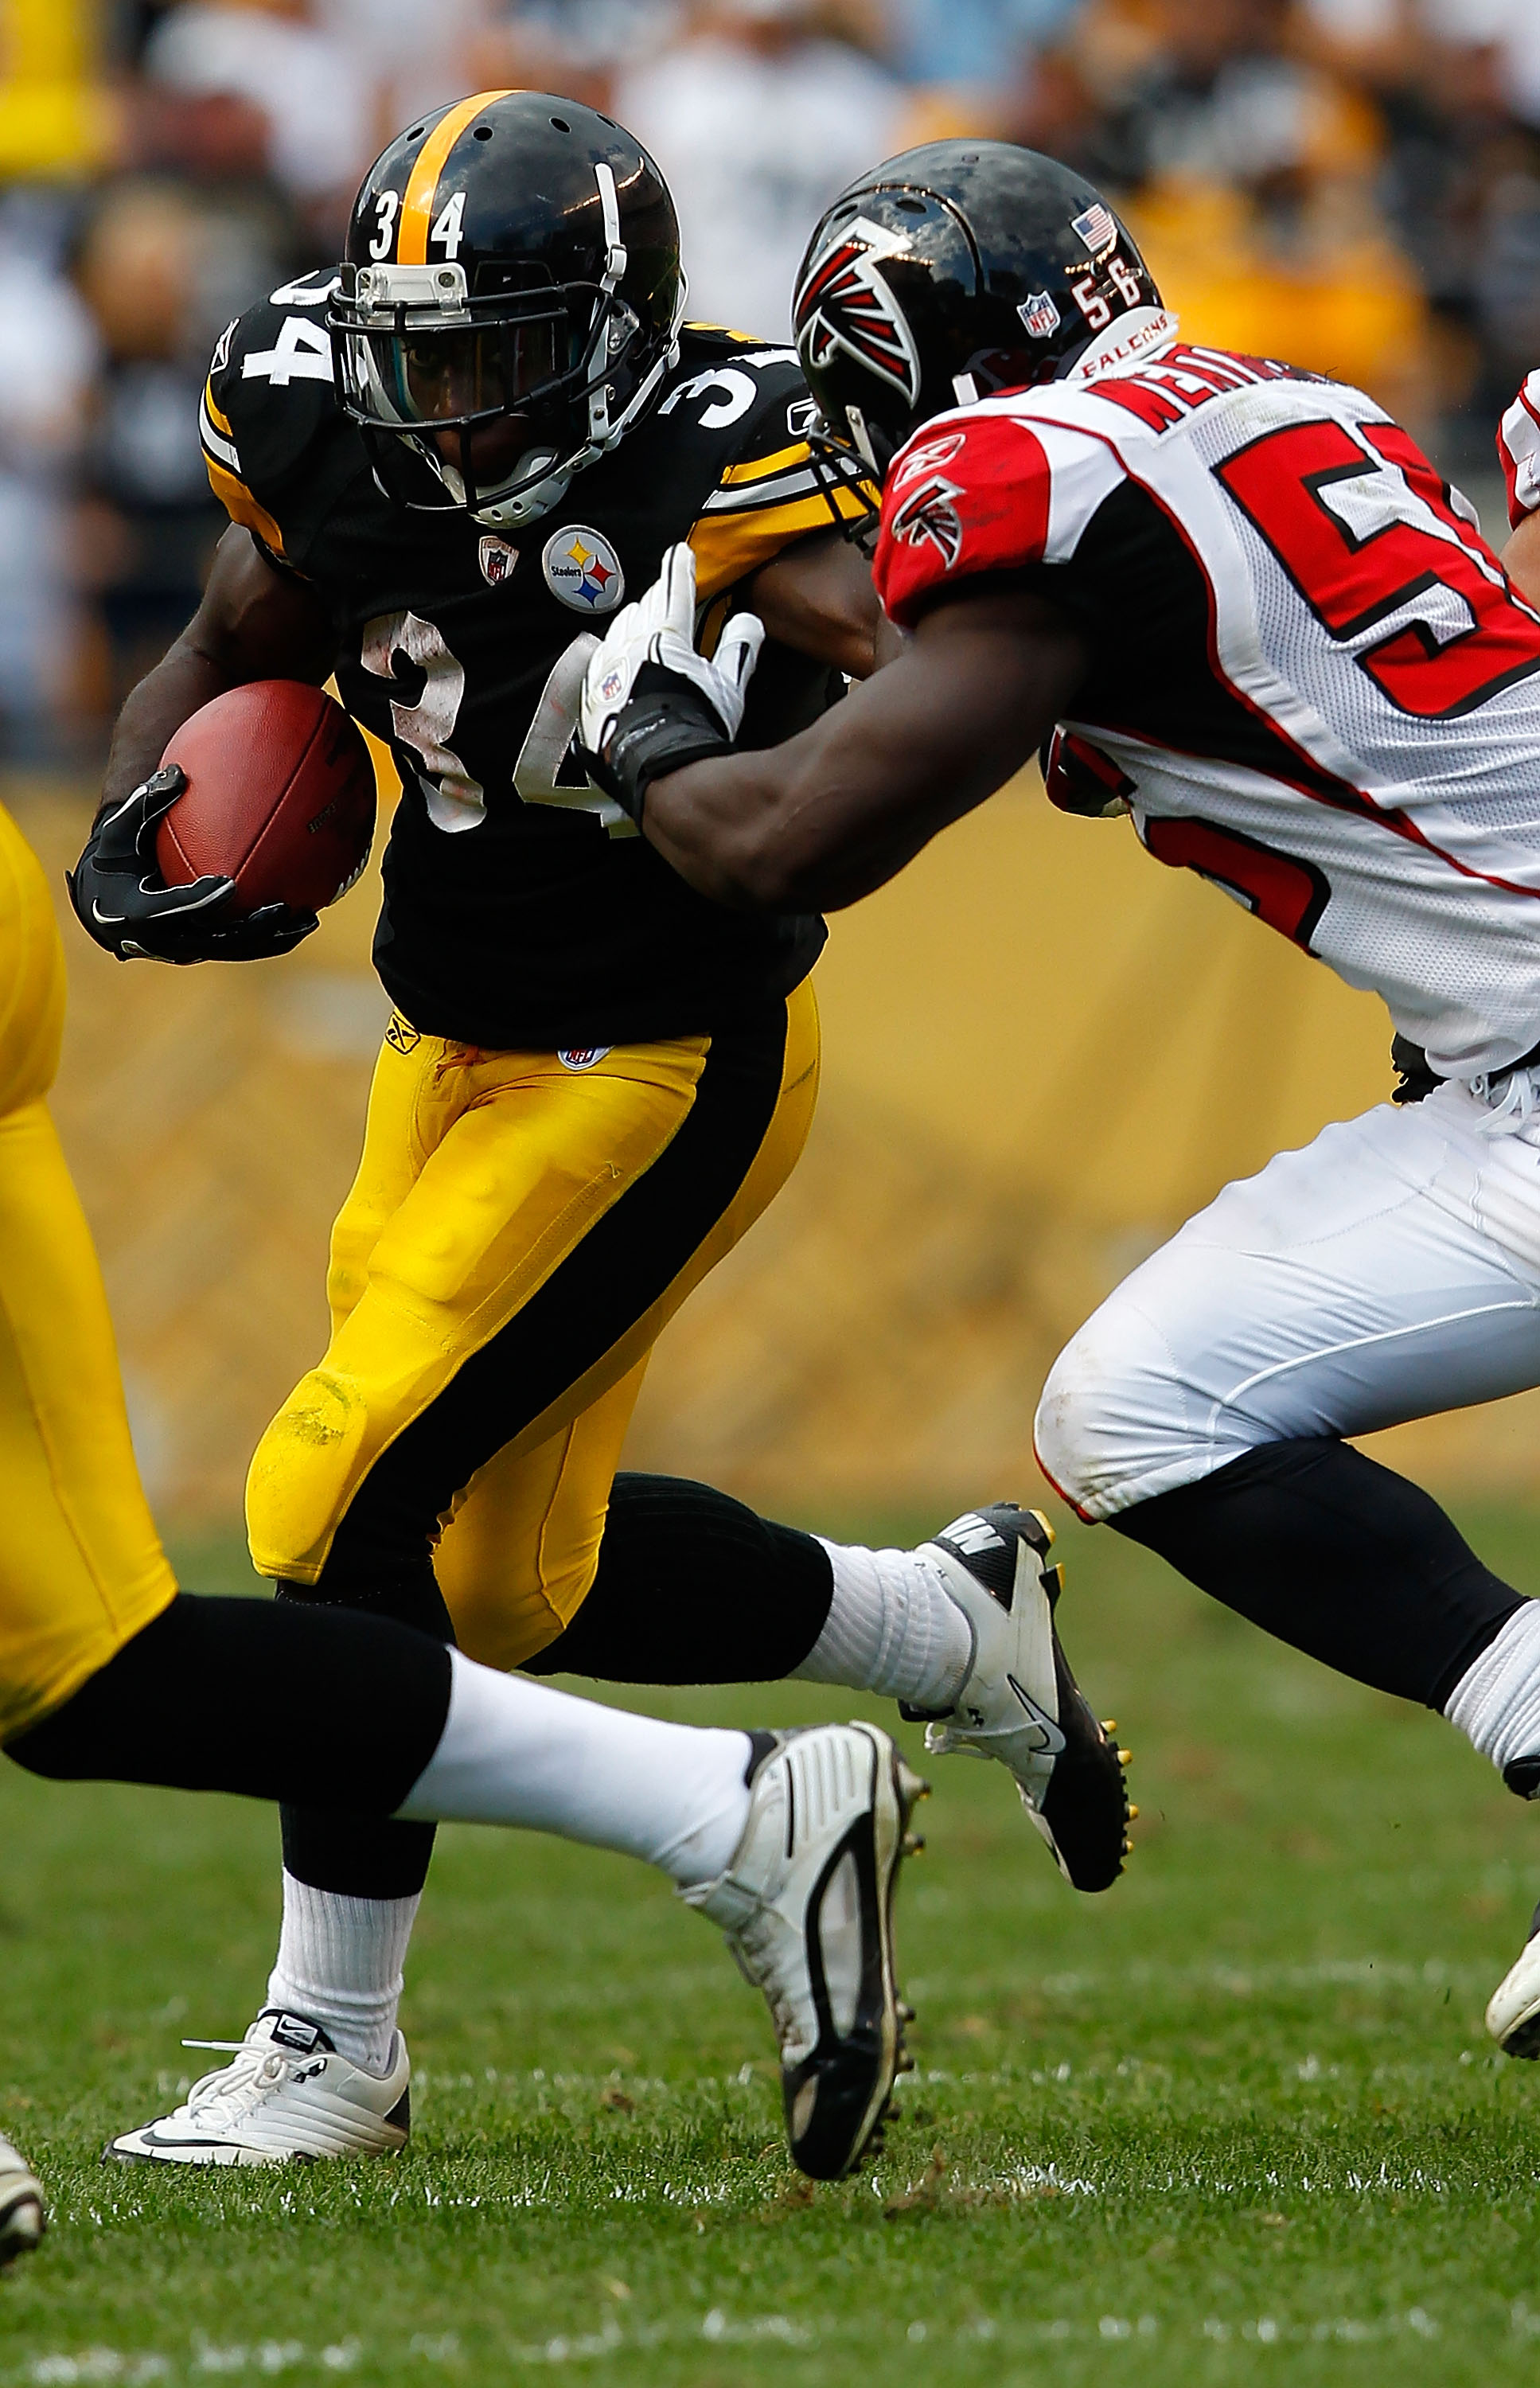 PITTSBURGH - SEPTEMBER 12:  Rashard Mendenhall #34 of the Pittsburgh Steelers attempts to run through Sean Weatherspoon #56 of the Atlanta Falcons during the NFL season opener game on September 12, 2010 at Heinz Field in Pittsburgh, Pennsylvania.  (Photo